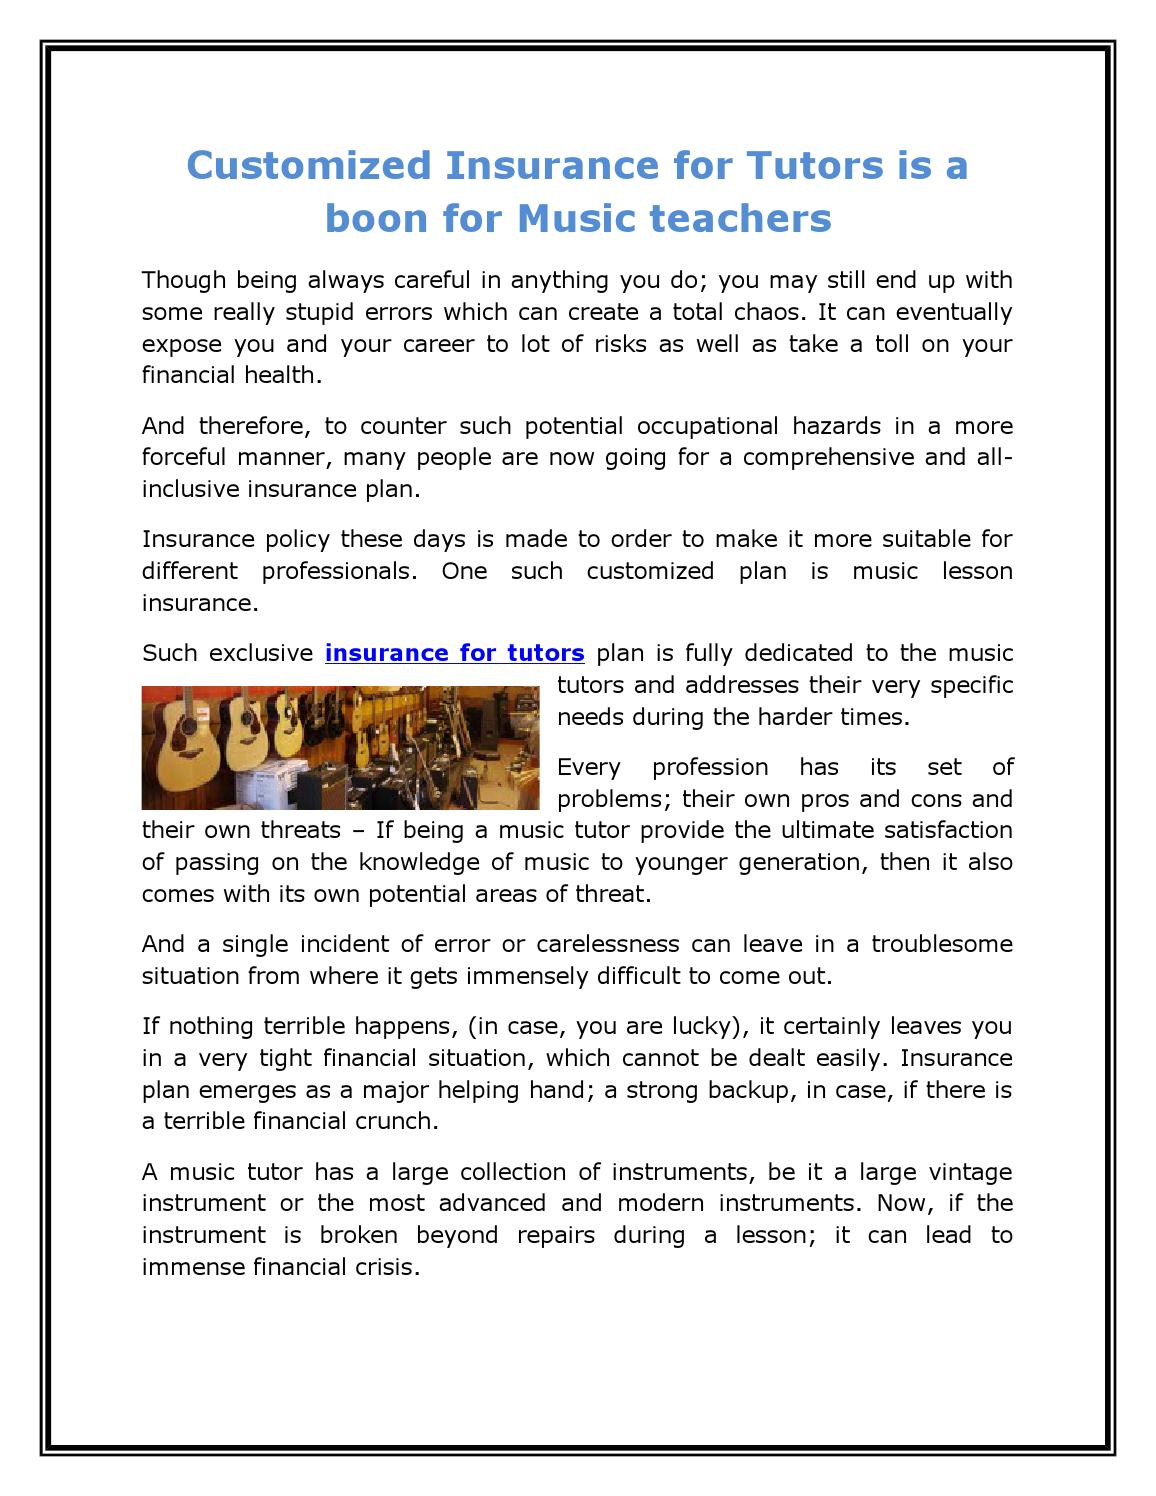 Customized insurance for tutors is a boon for music ...